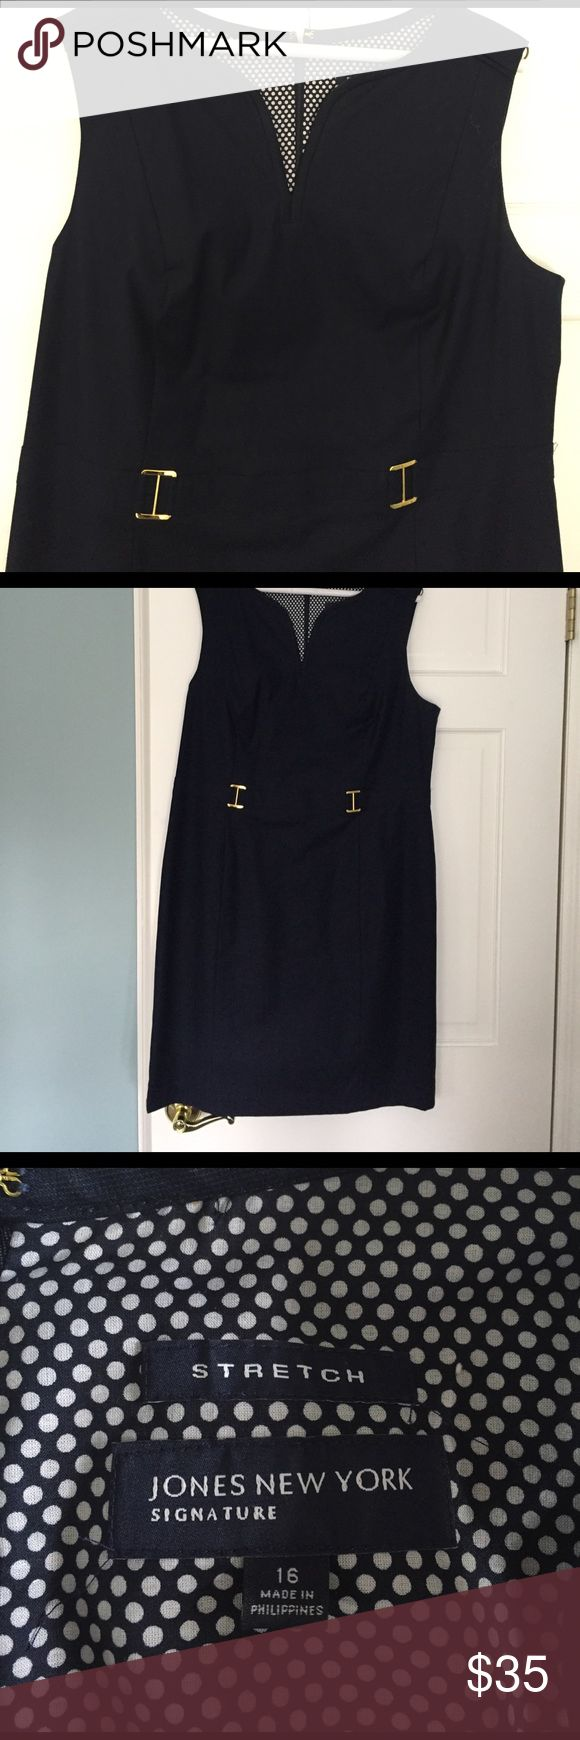 "Navy summer work dress NWOT, fully lined navy cotton blend dress with gold waist buckle details. Nicely fitted with pretty neckline and accent shoulder seams. 21"" bust, 39"" Length from shoulder to hem. Never worn. Jones New York Dresses Midi"